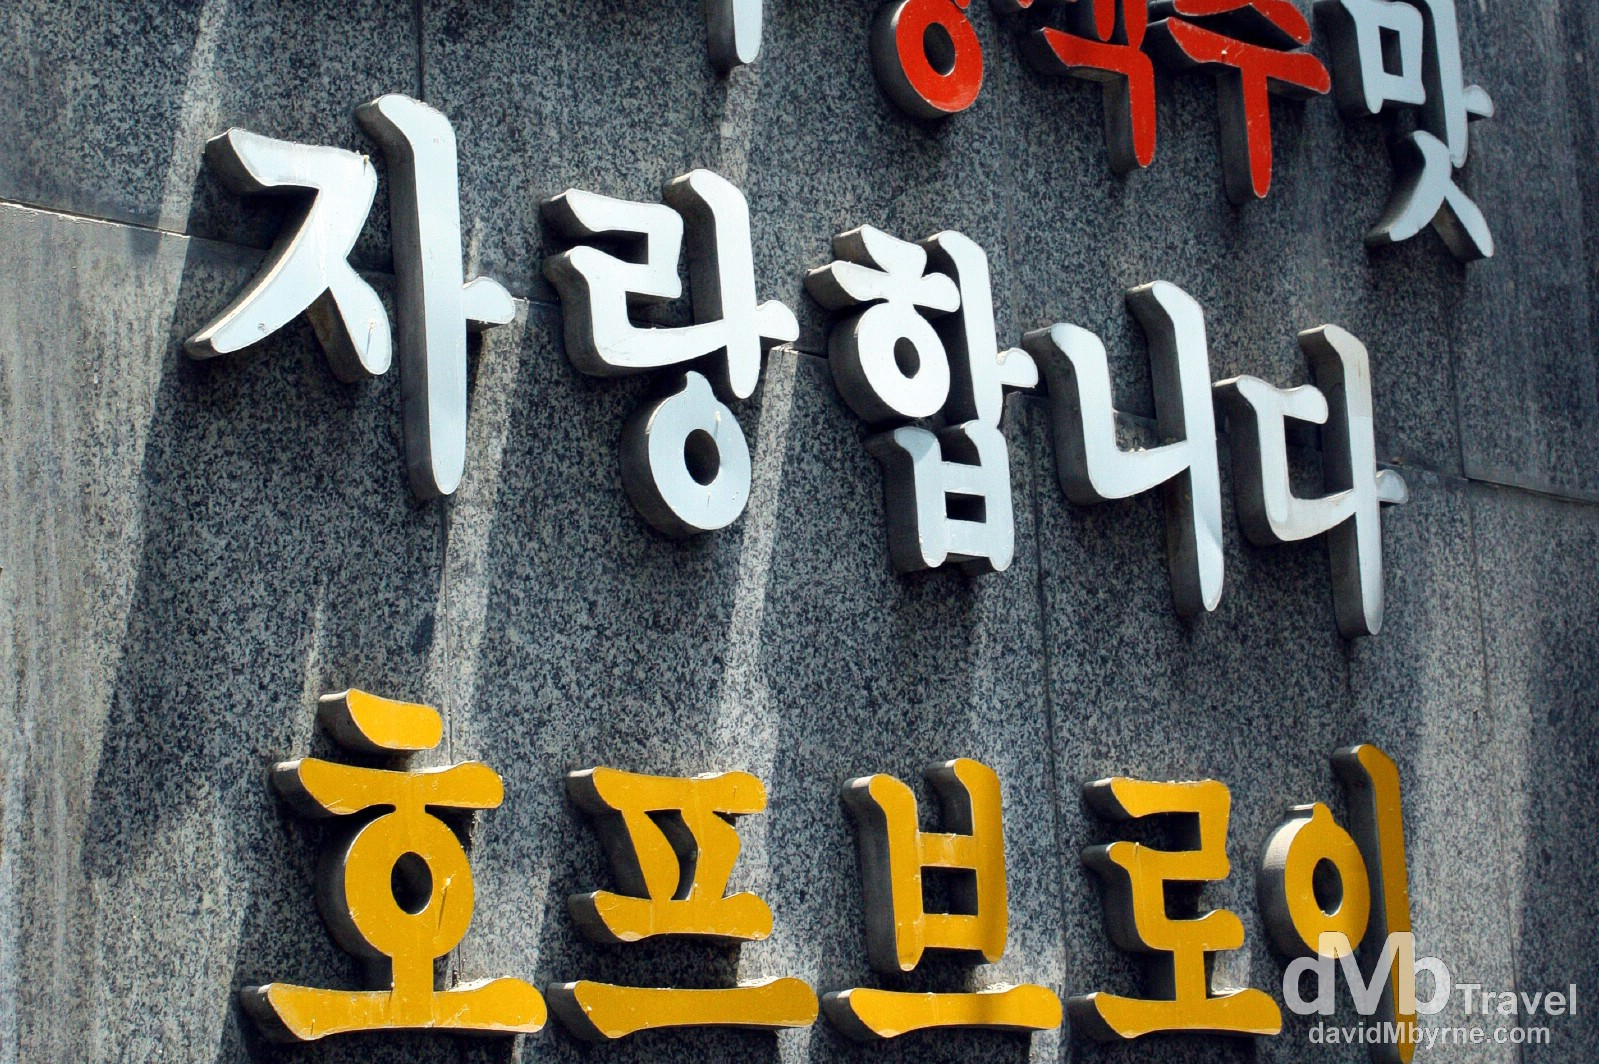 Hangul, Korean script, on the streets of Seoul, South Korea. July 8, 2008.